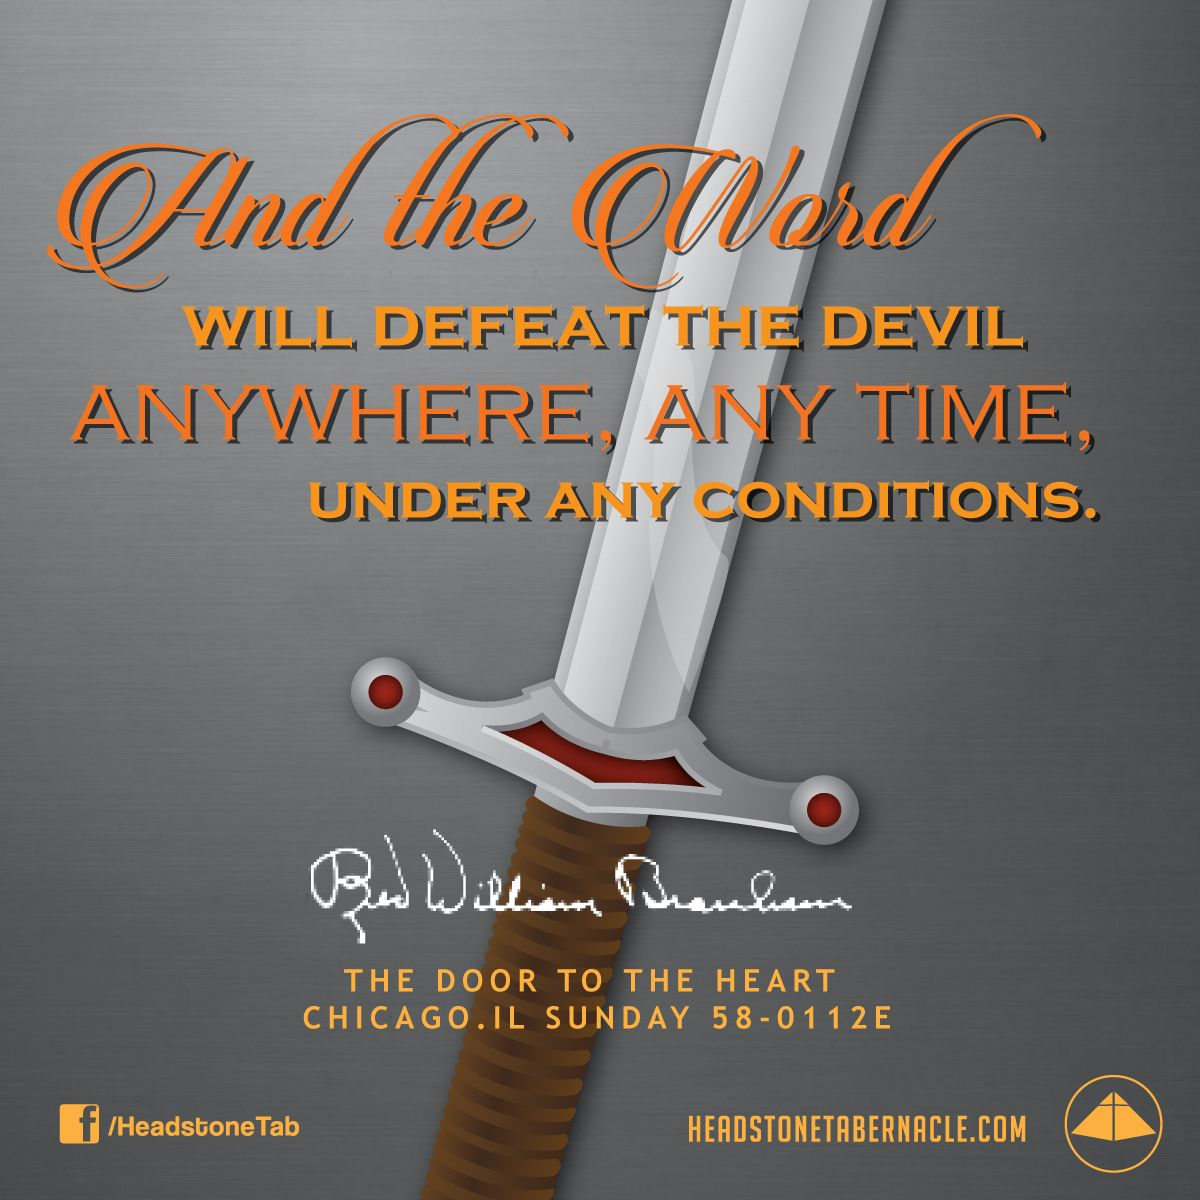 And the Word will defeat the devil anywhere, any time, under any conditions. Image Quote from: THE DOOR TO THE HEART CHICAGO IL SUNDAY 58-0112E - Rev. William Marrion Branham